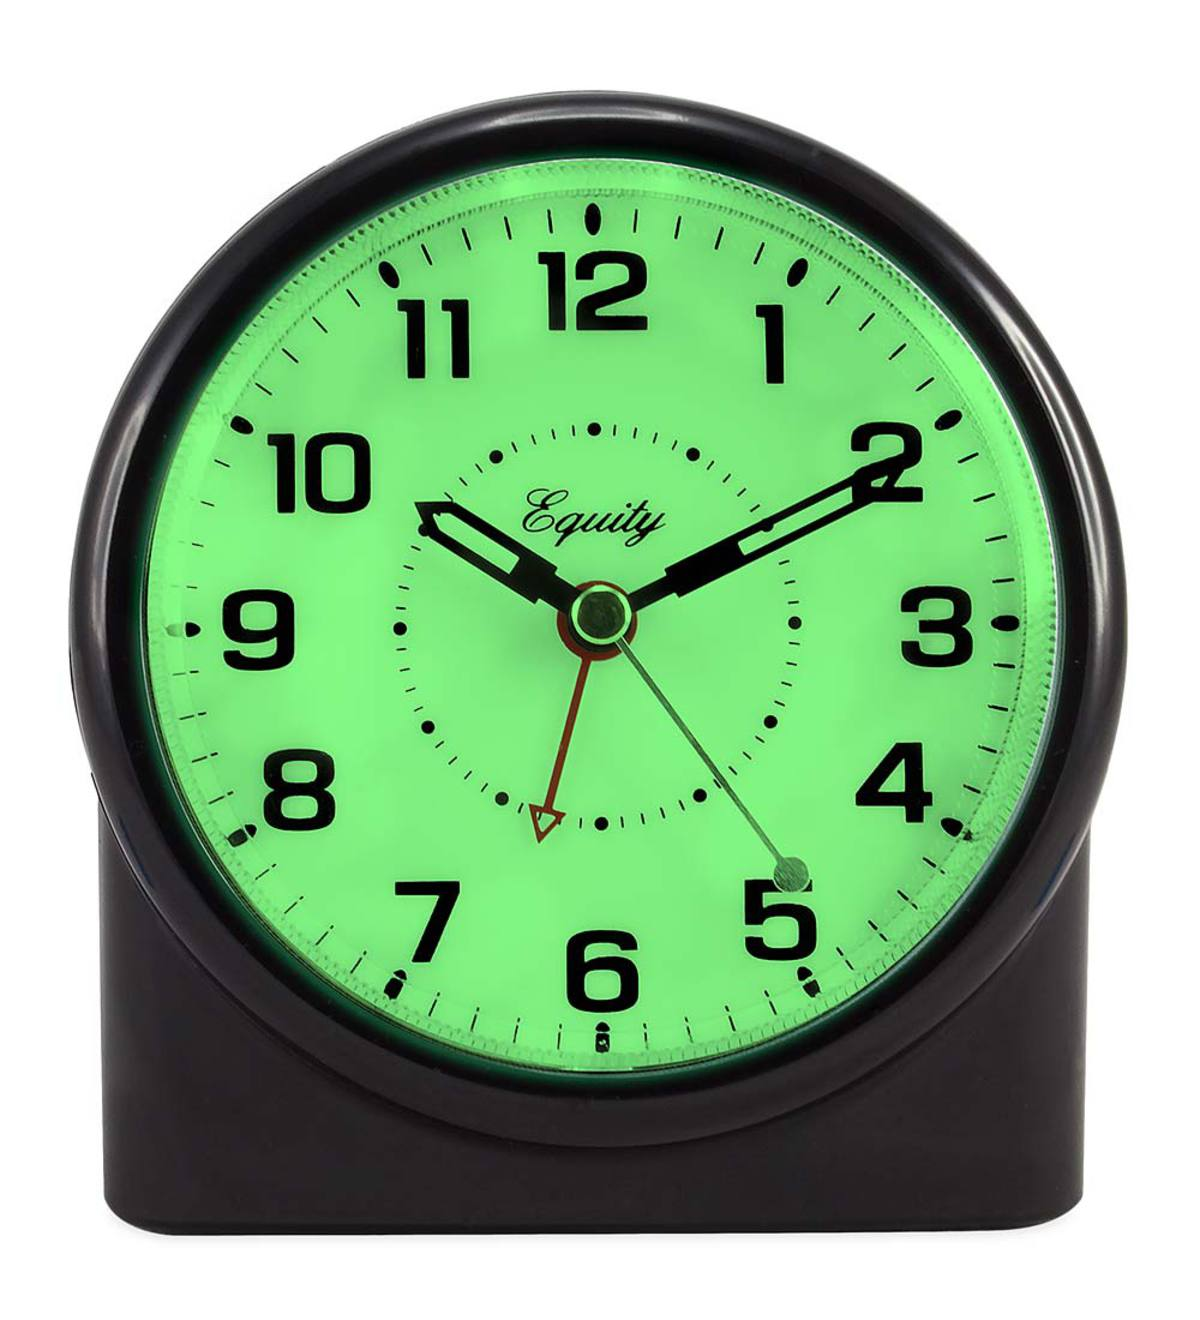 Backlit Analog Alarm Clock